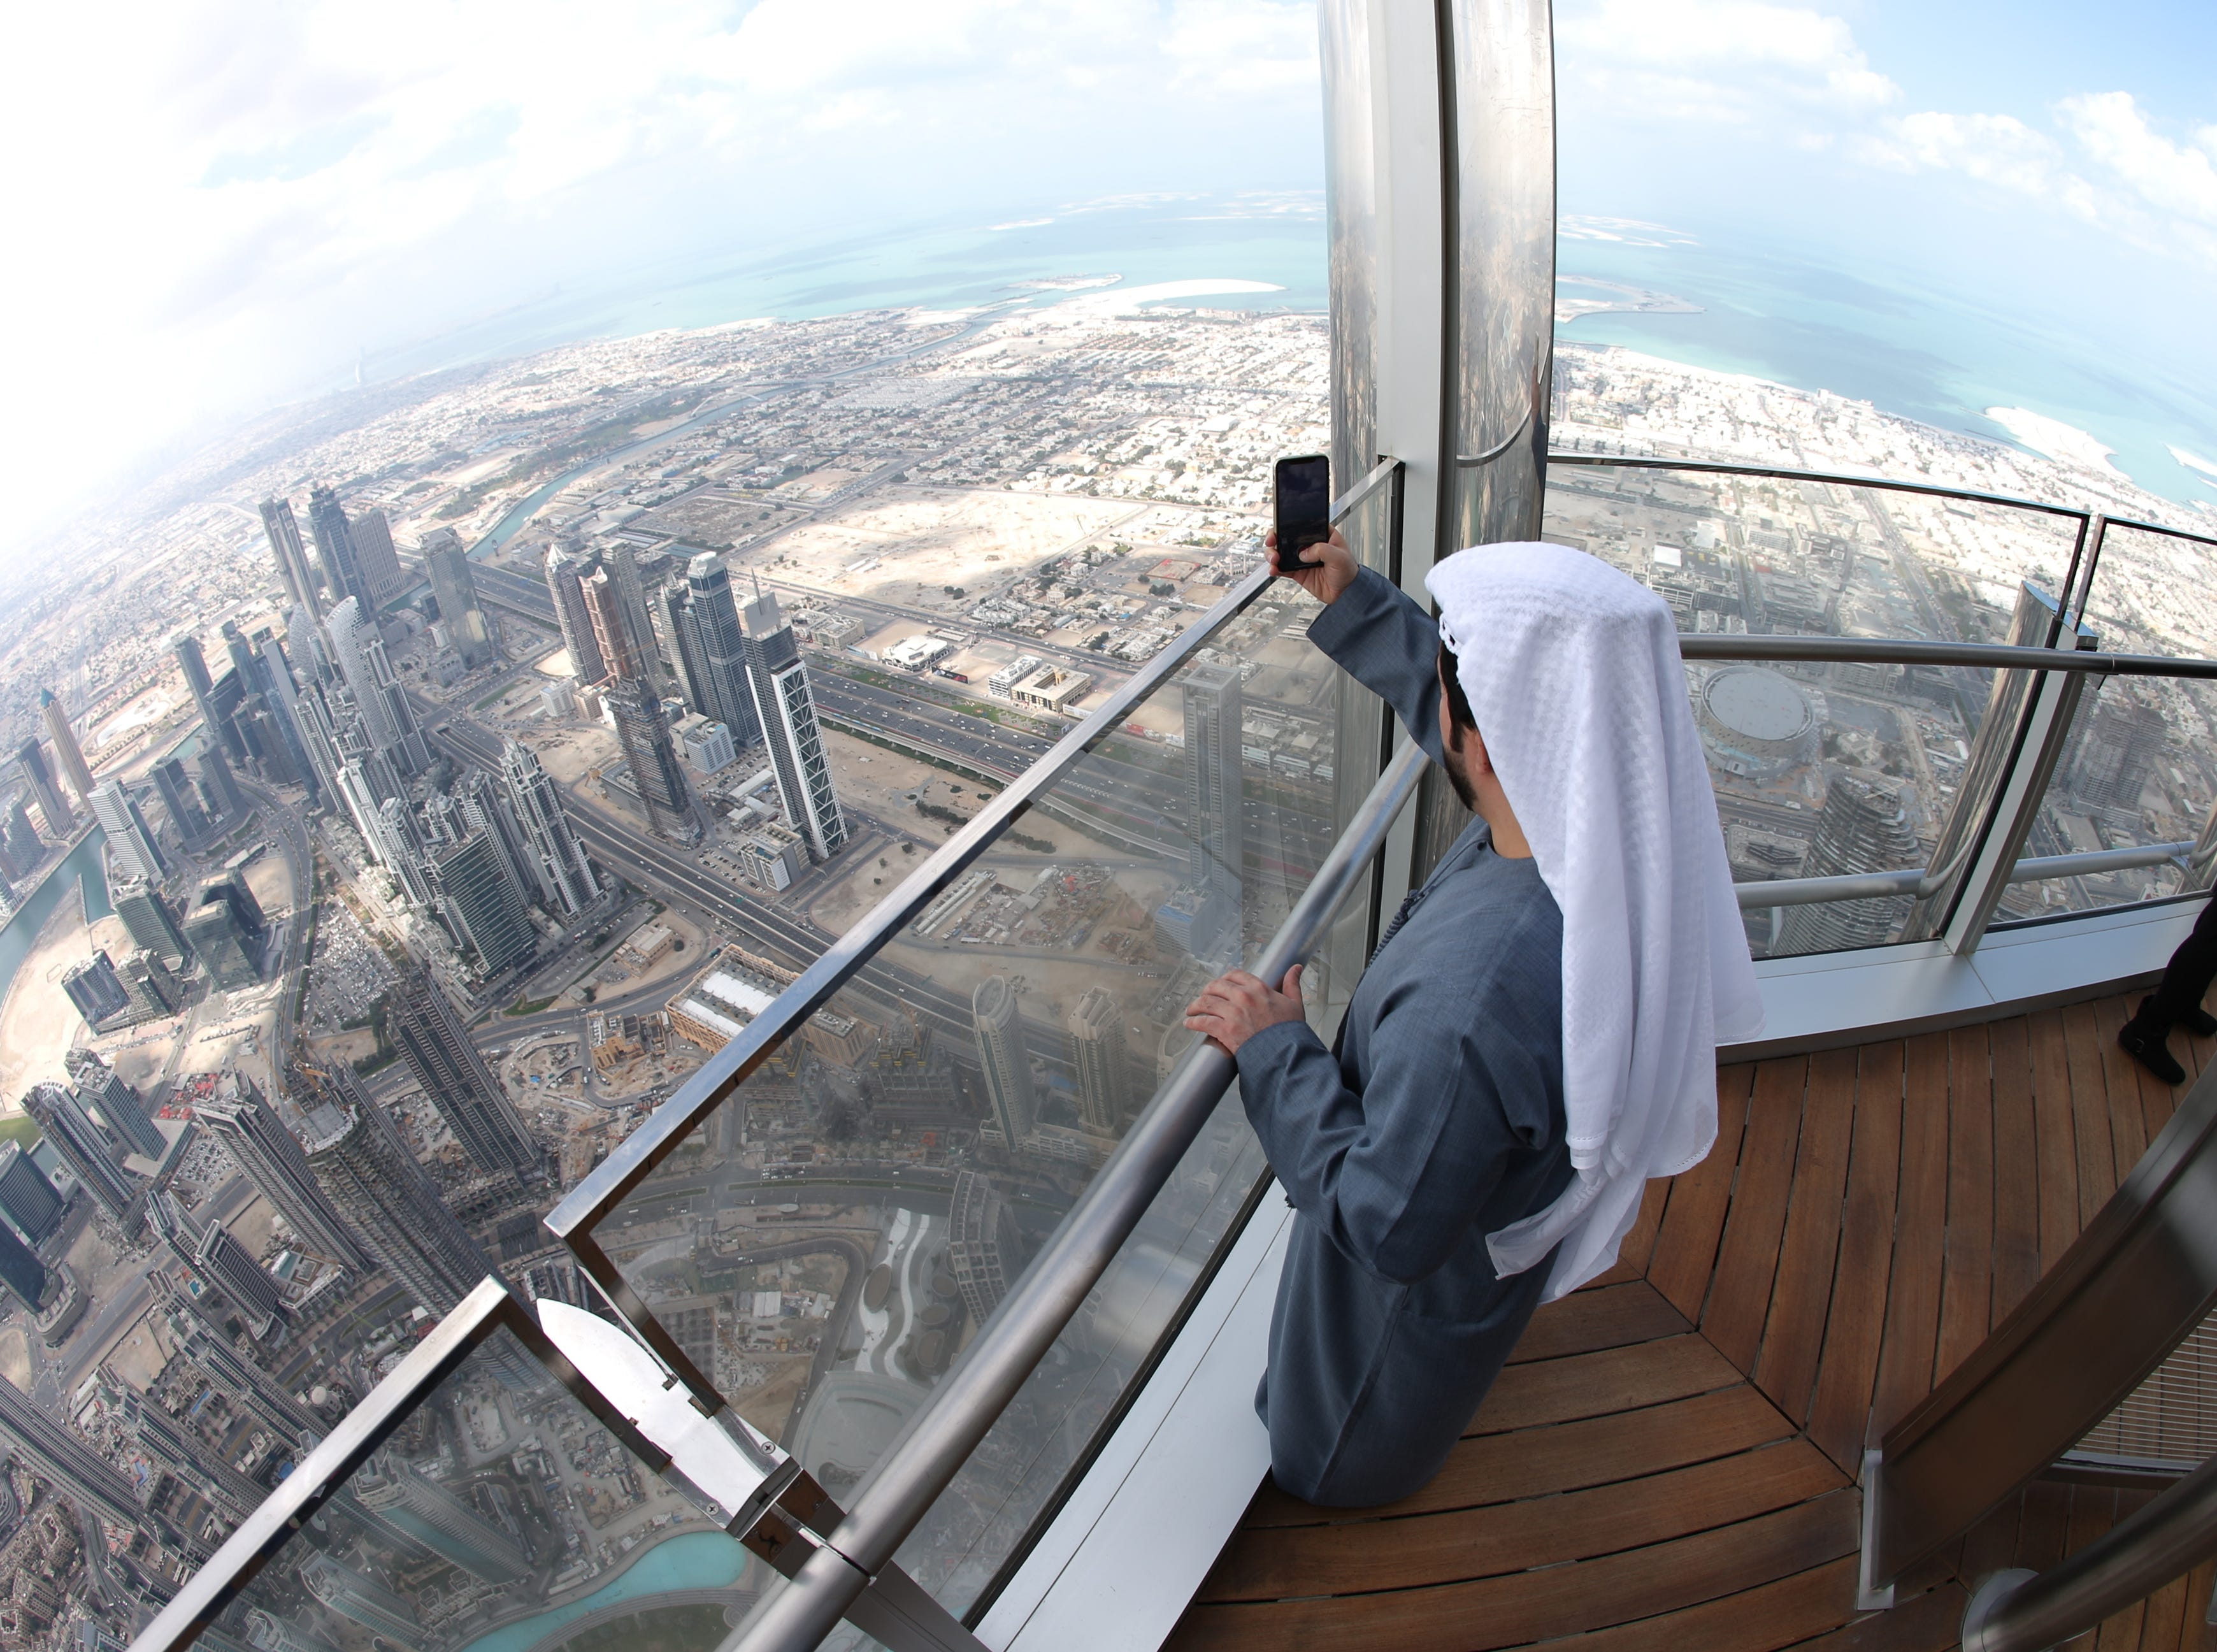 epa07366684 A picture taken with a fish eye lens shows people inspecting the new highest lounge in the world at Burj Khalifa in Dubai, United Arab Emirates, 13 February 2019. Ahmad Al Falasi, Executive Director Emaar Properties announced during media briefing the opening of highest lounge in the world at Burj Khalifa which is located at 152, 153 and 154 floor which have distinctive settings each assuring never before seen views of the city.  EPA-EFE/ALI HAIDER ORG XMIT: XAH001